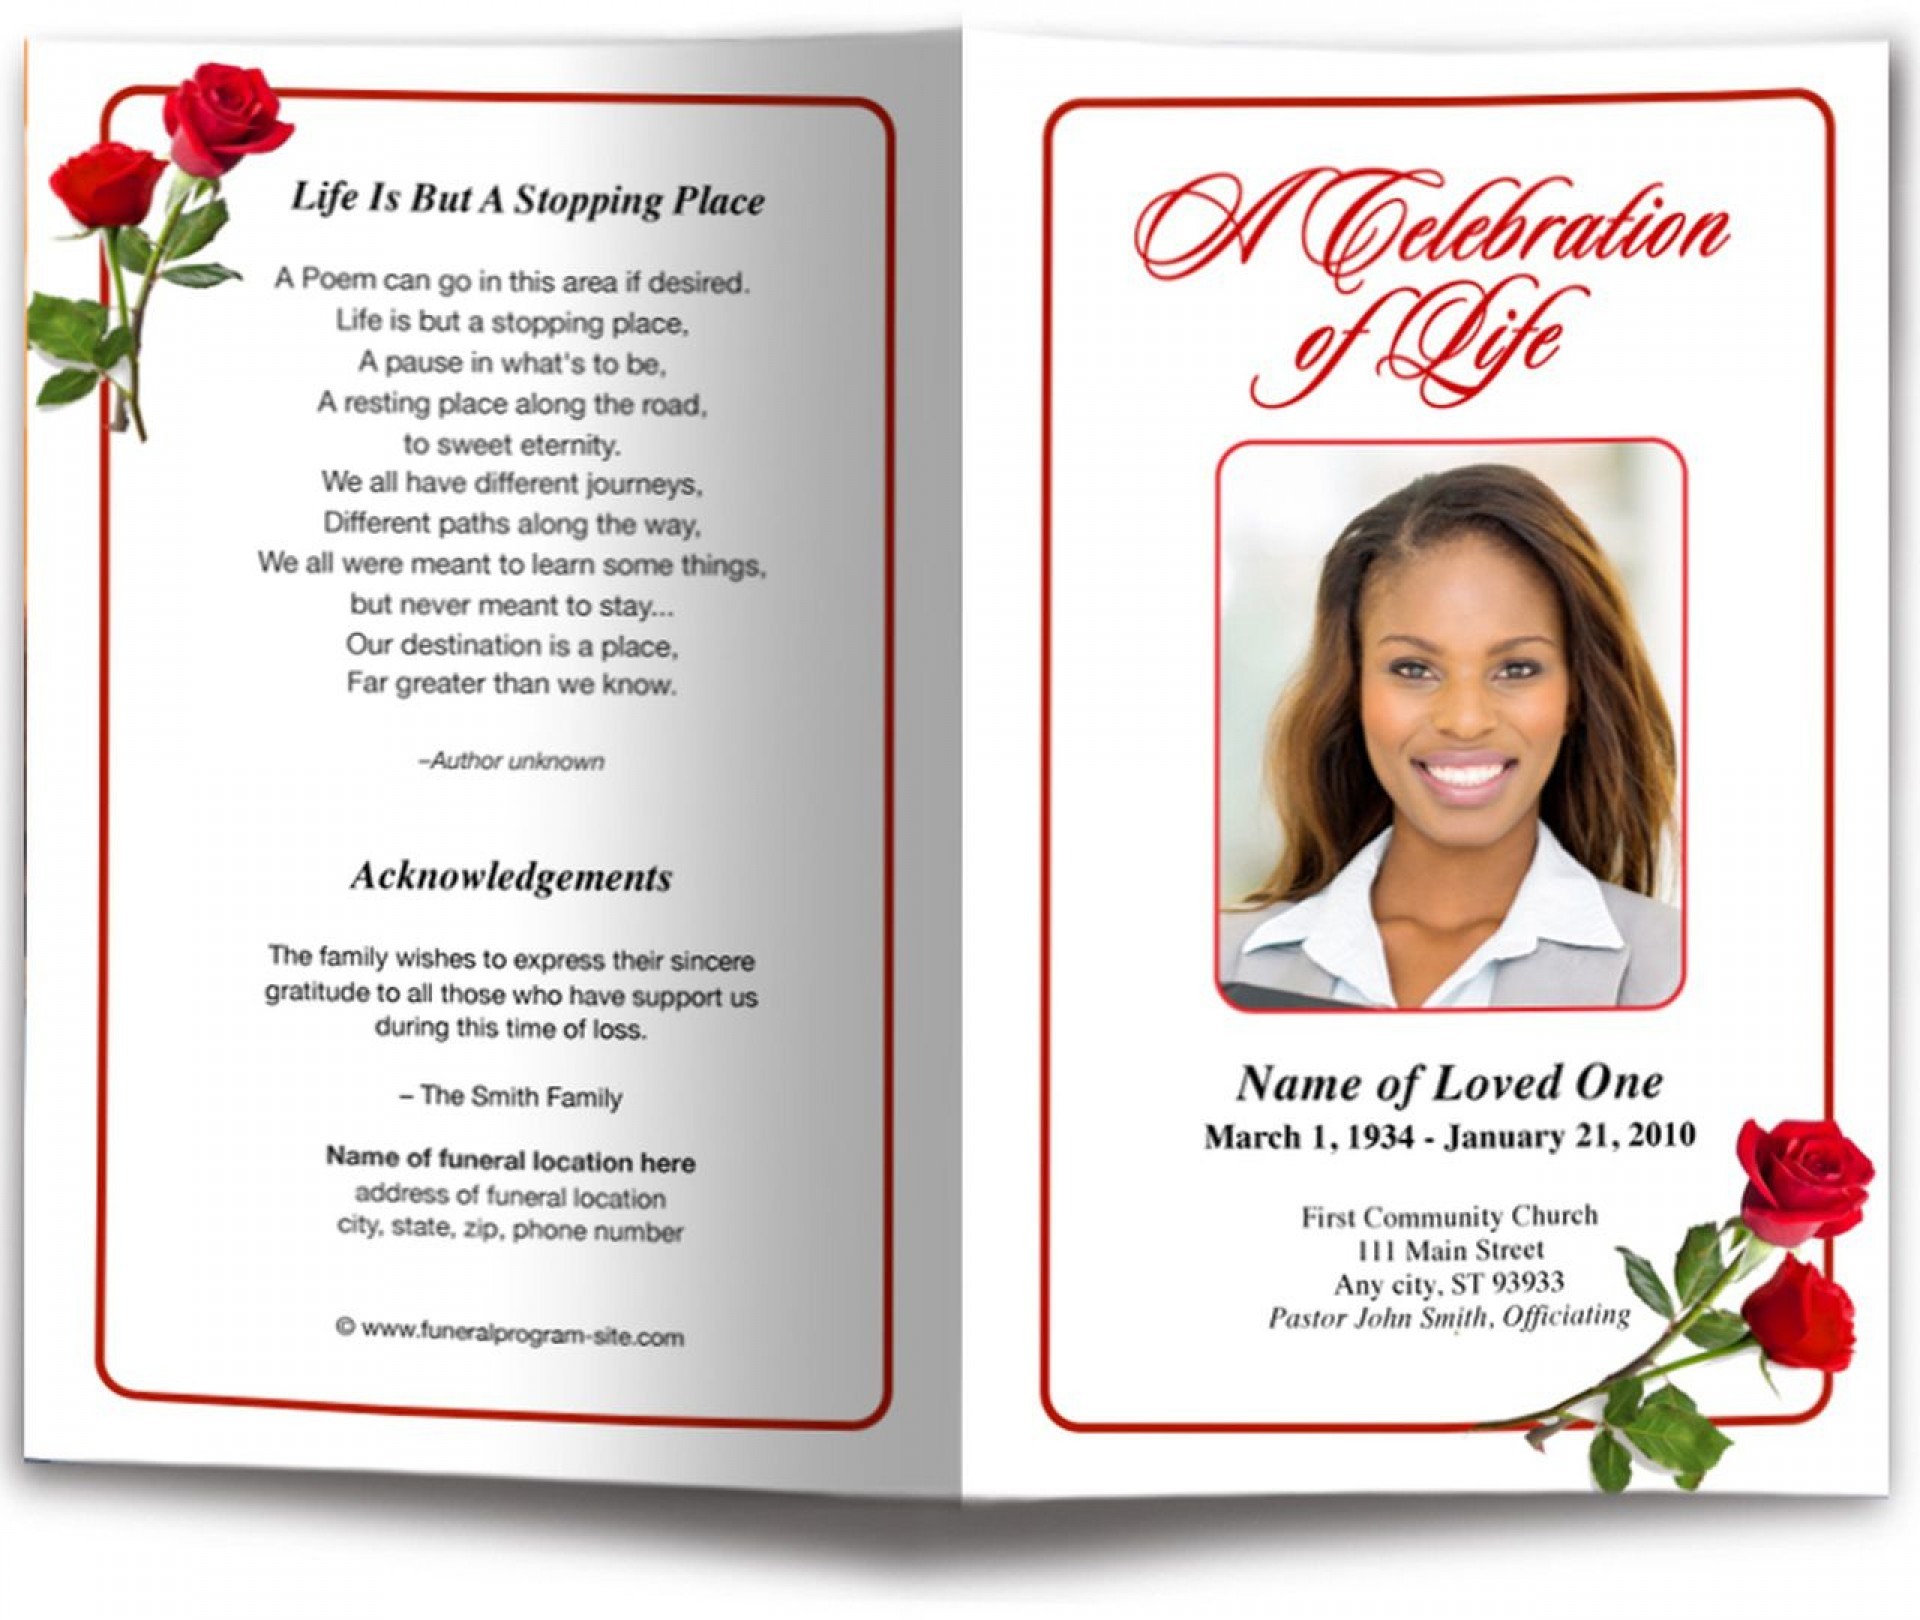 006 Incredible Funeral Program Template Free Inspiration  Blank Microsoft Word Layout Editable Uk1920